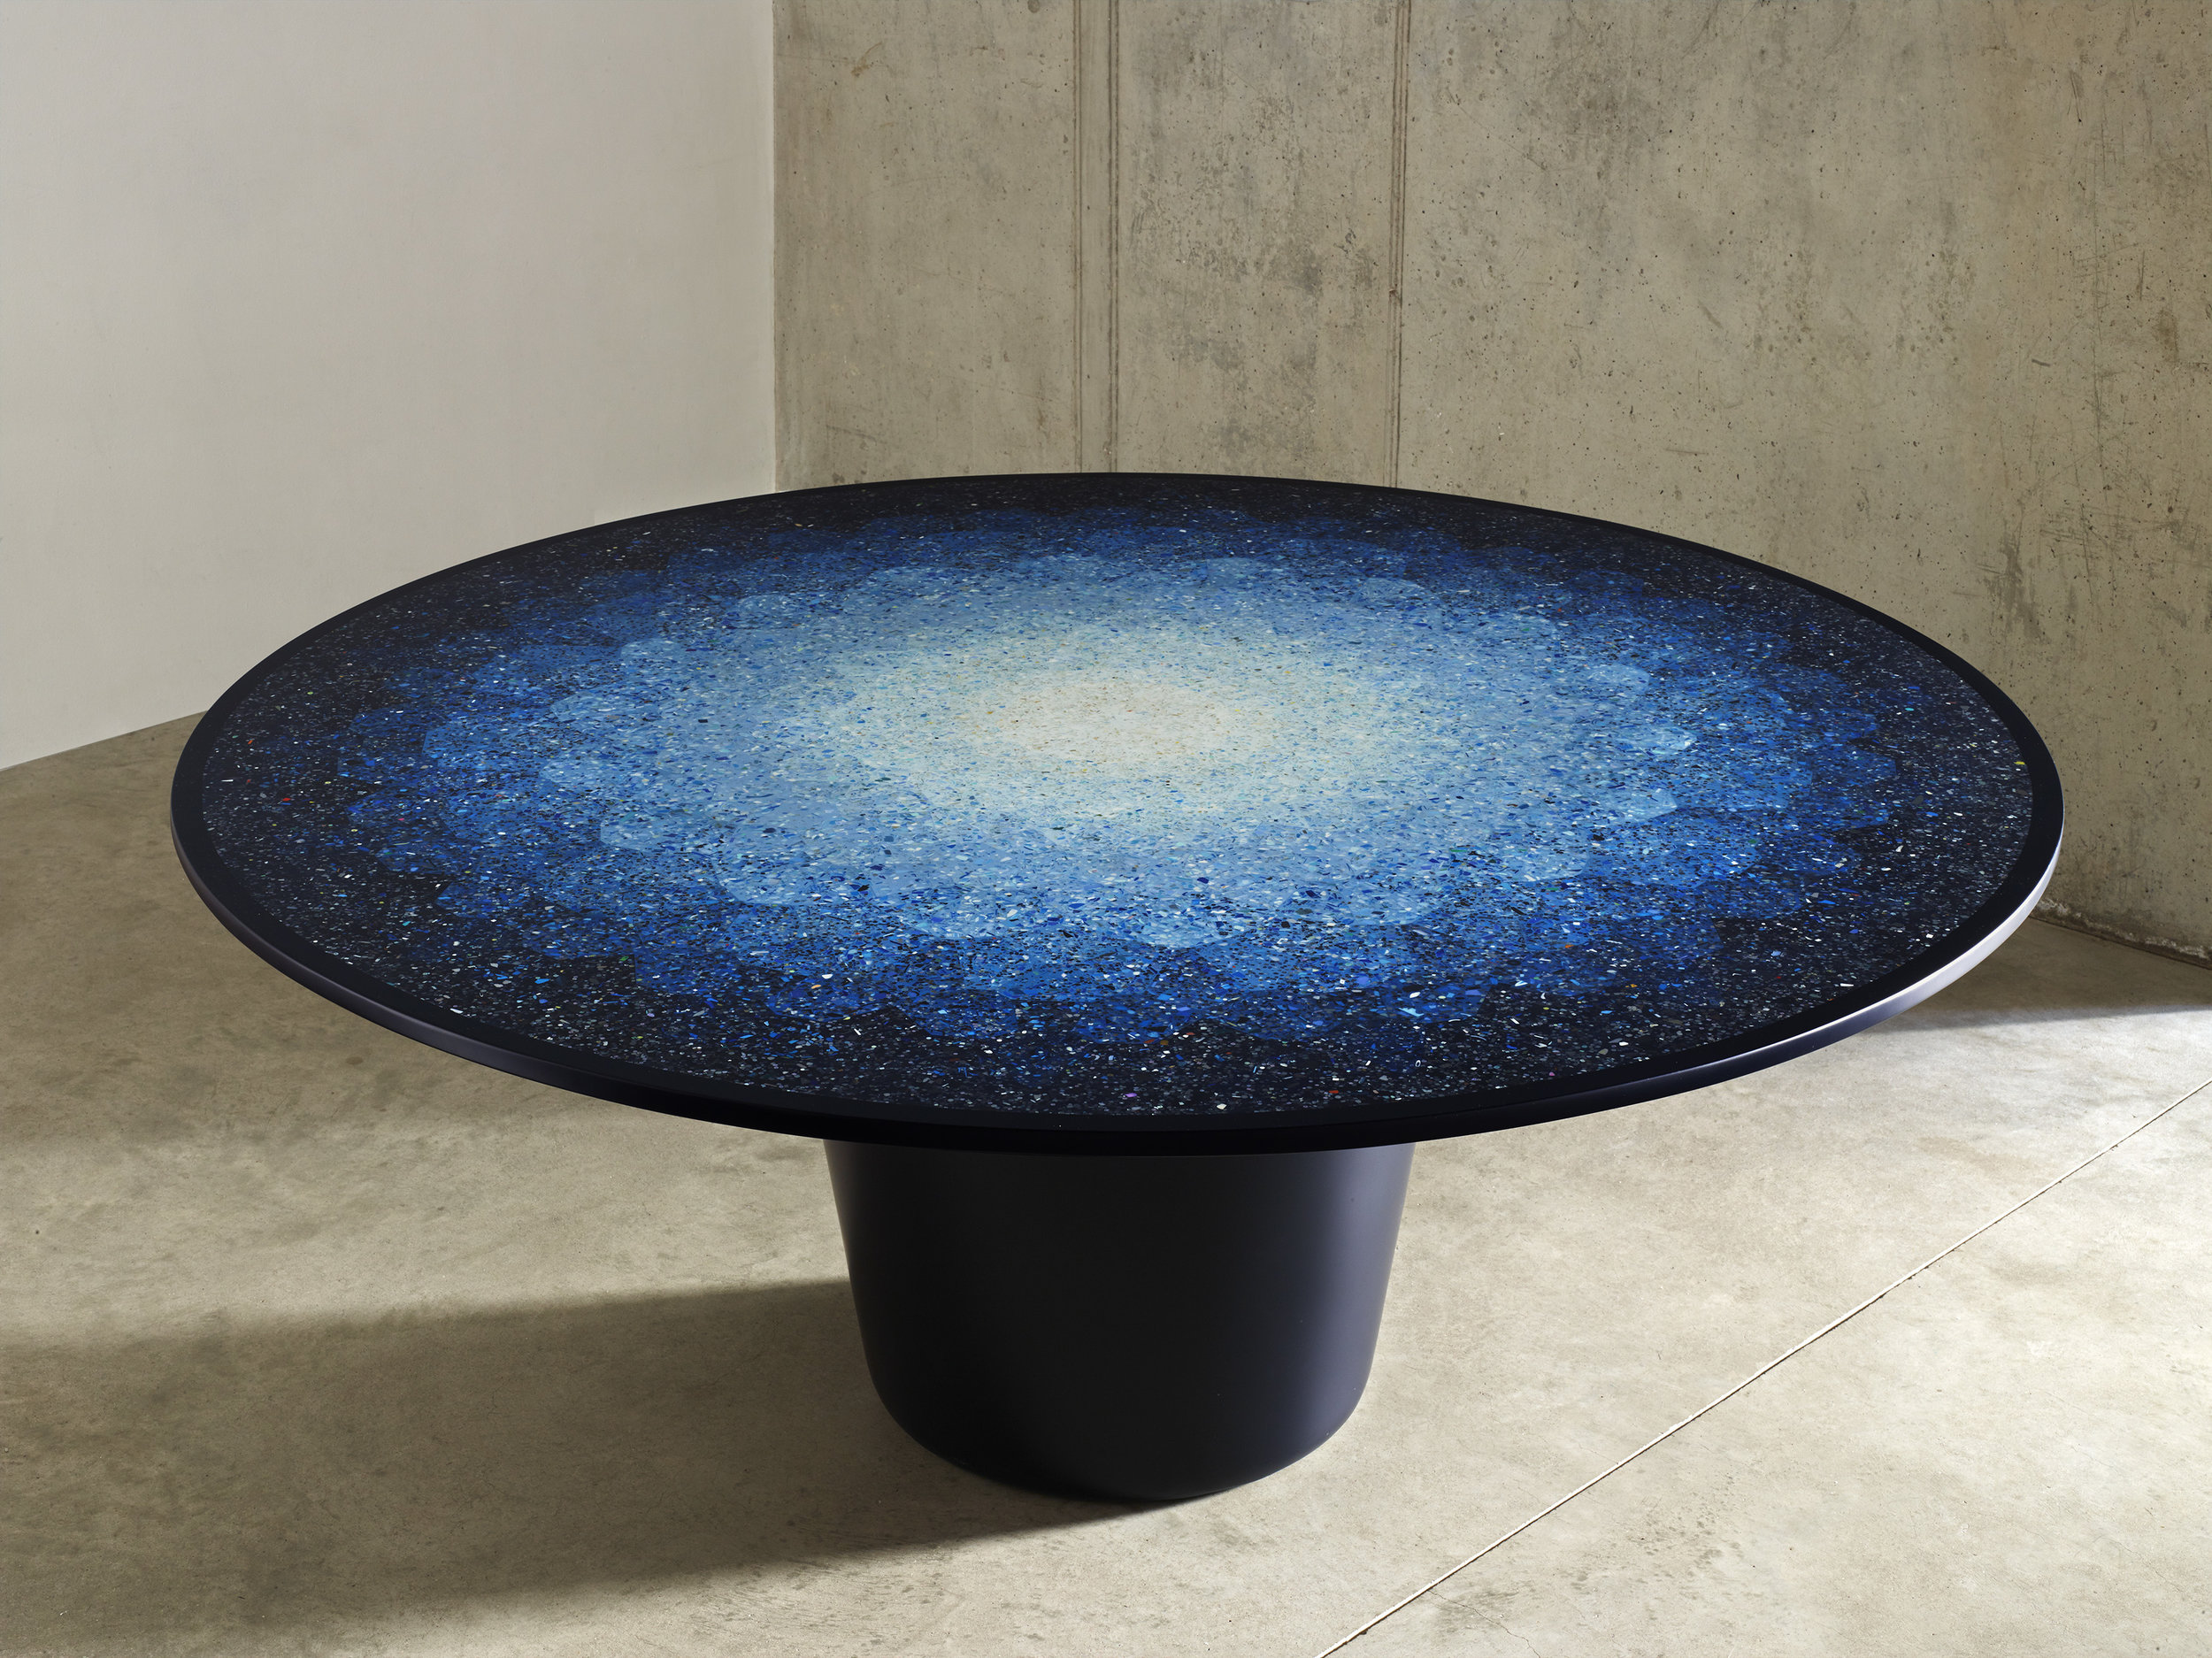 Gyro Table, made out of ocean plastic by Brodie Neil - a souvenir of humanity's neglect for the environment